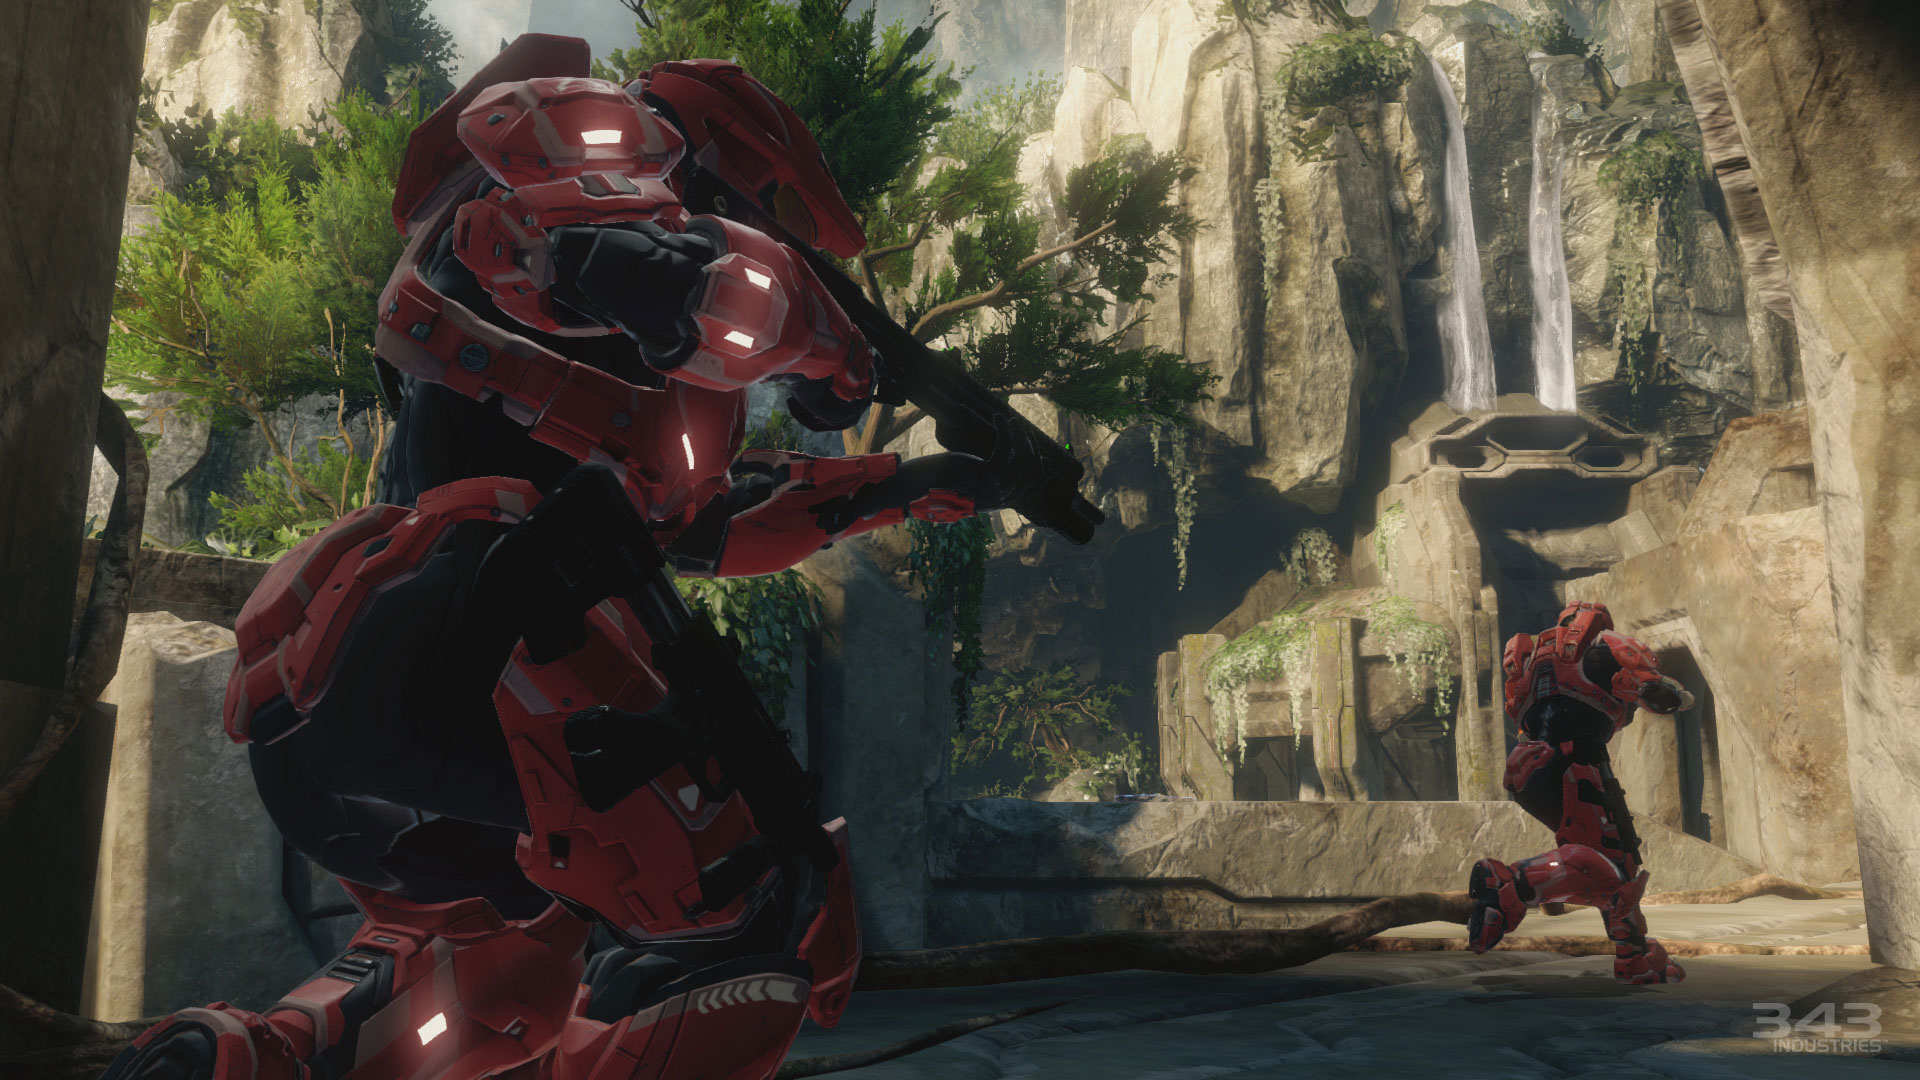 Halo Reach Matchmaking Issues - Halo Reach - Industries Community Forum